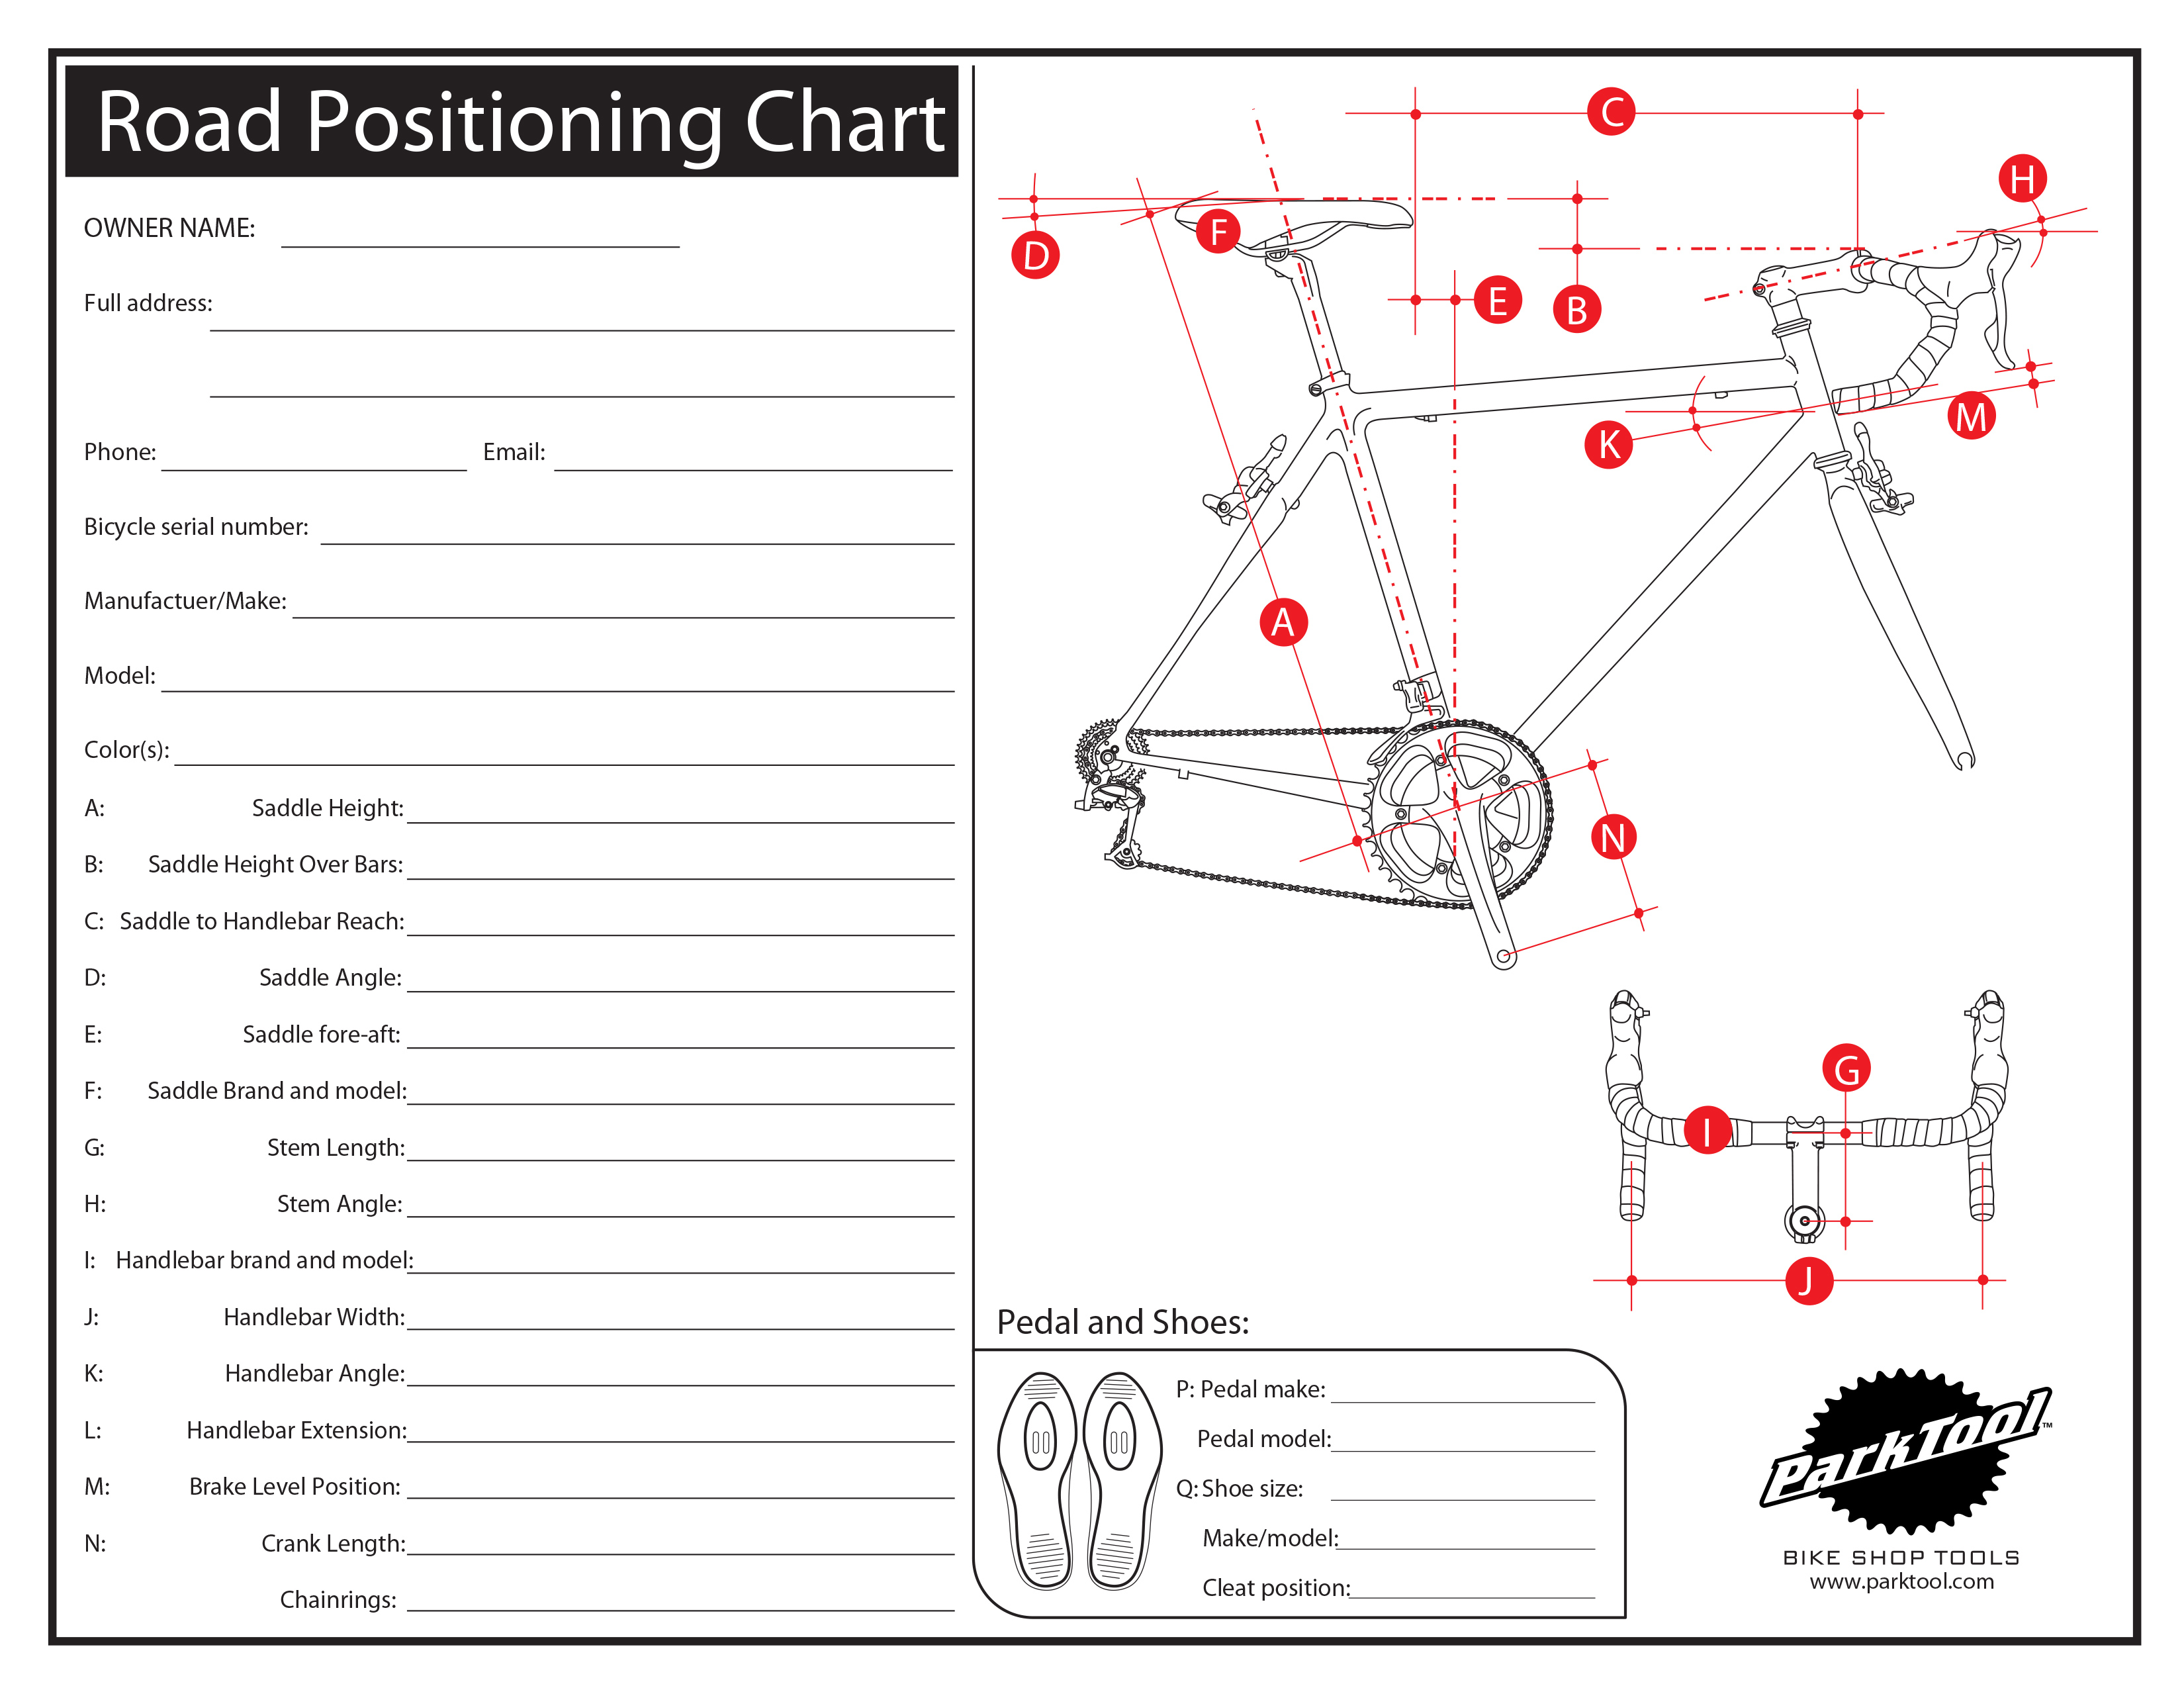 Road Positioning Chart | Park Tool